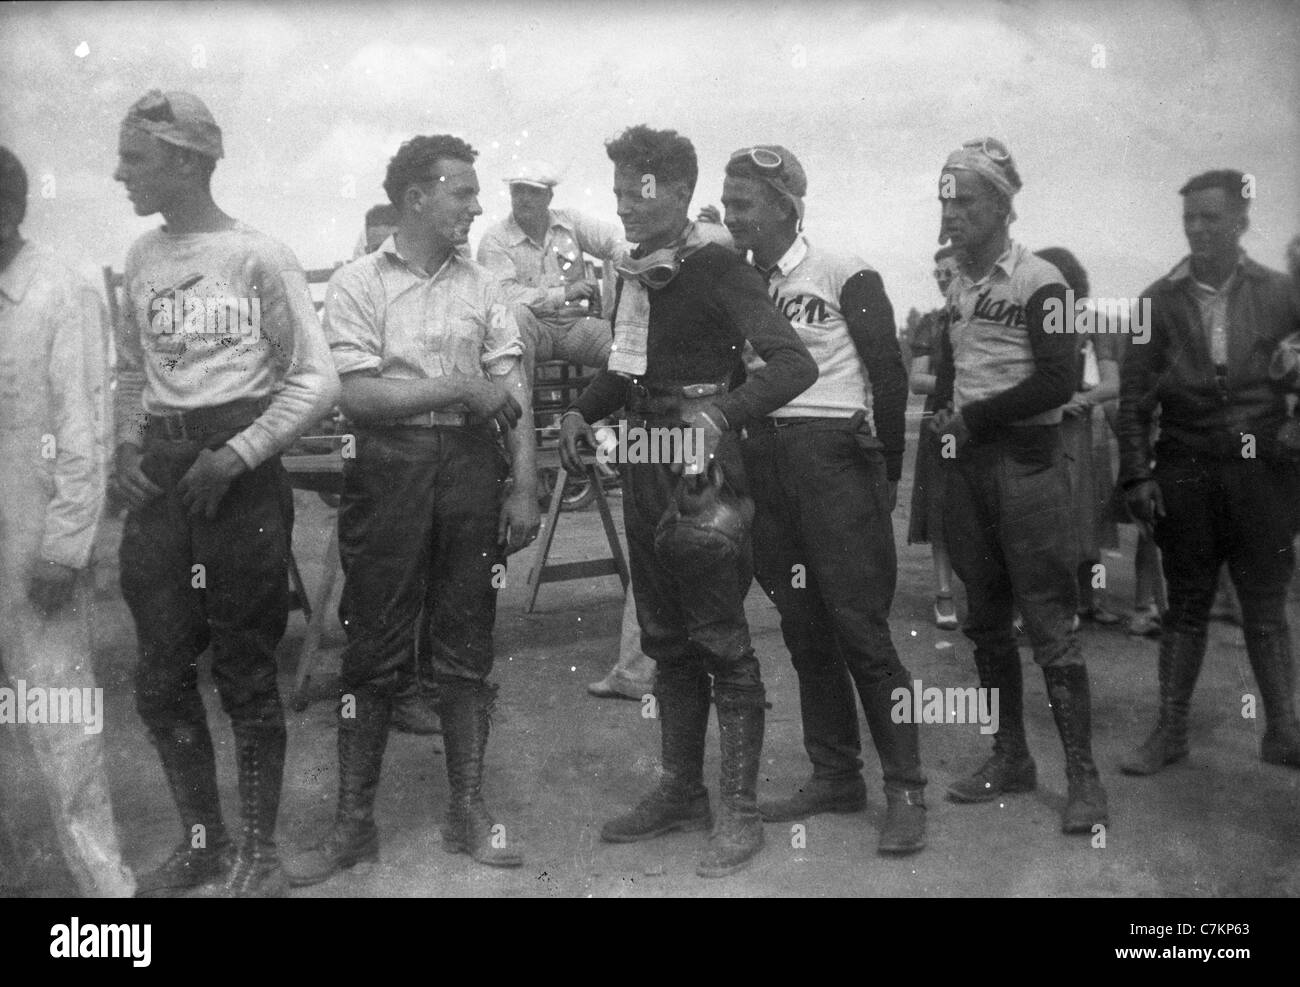 1930s motorcycle race Americana racers dressed men group fashion men's young males group - Stock Image